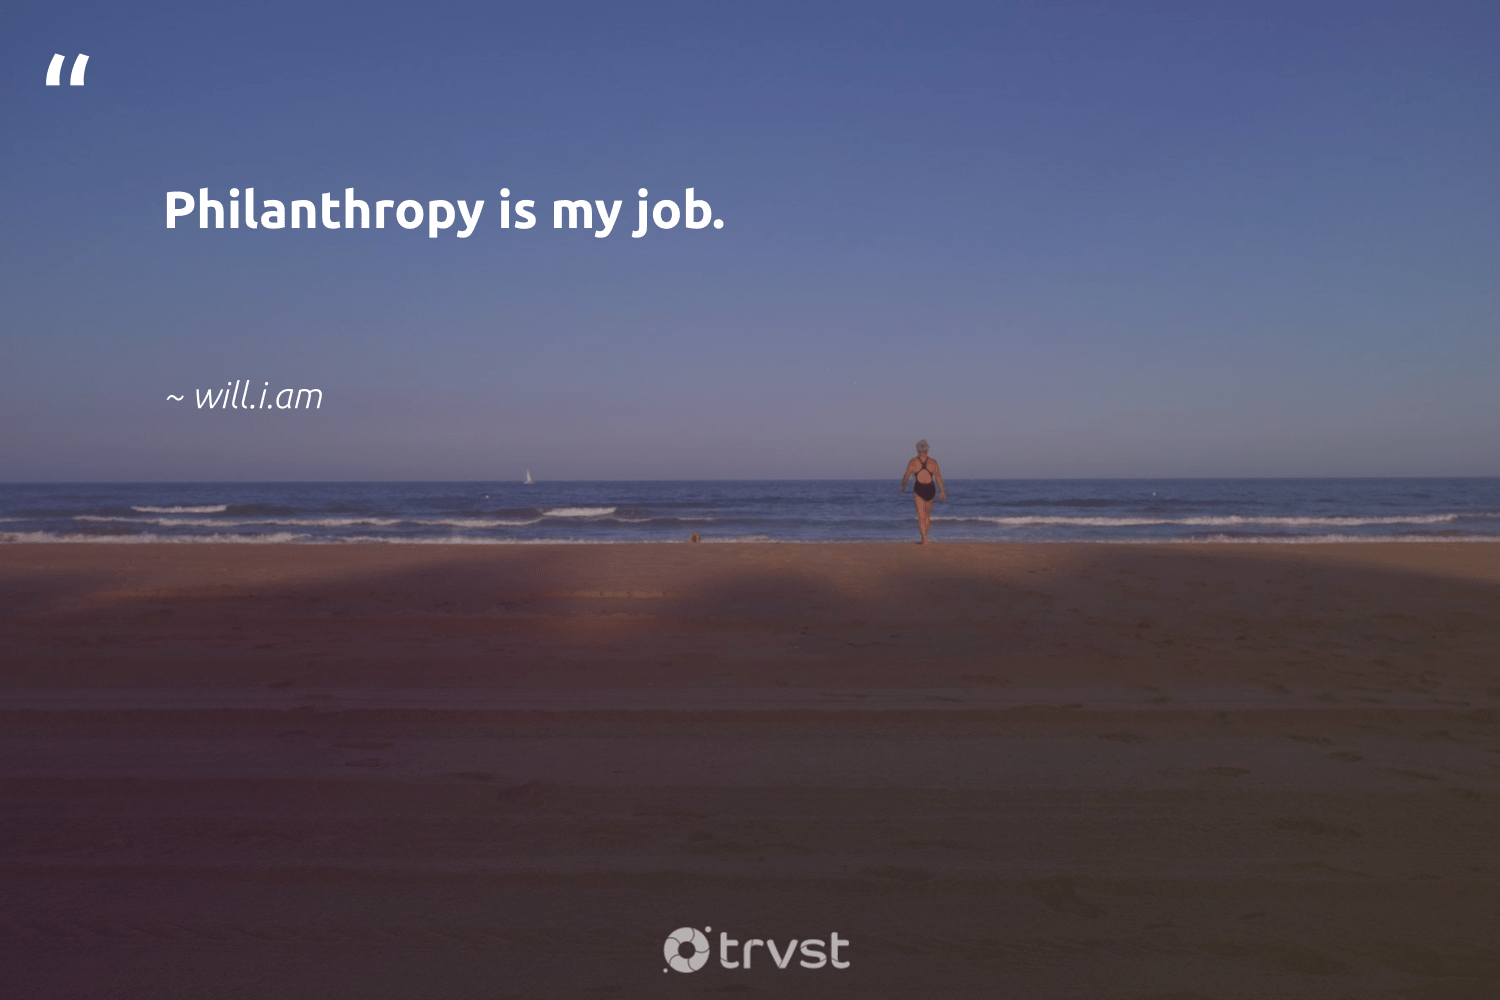 """Philanthropy is my job.""  - will.i.am #trvst #quotes #philanthropy #philanthropic #togetherwecan #itscooltobekind #ecoconscious #changemakers #giveforthefuture #bethechange #collectiveaction #planetearthfirst"